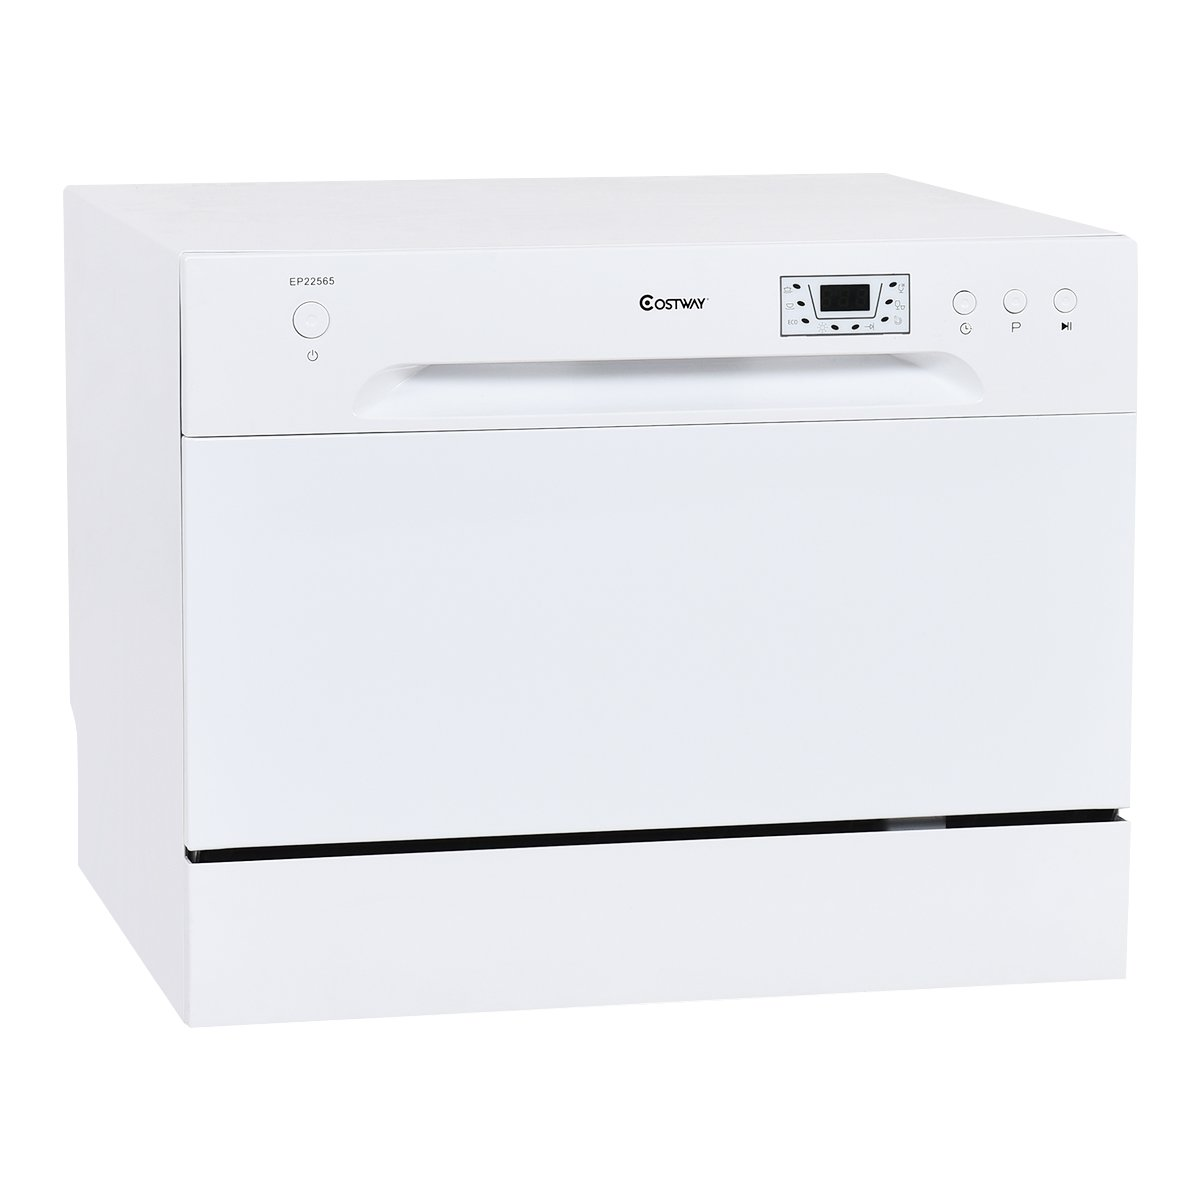 Costway Countertop Dishwasher